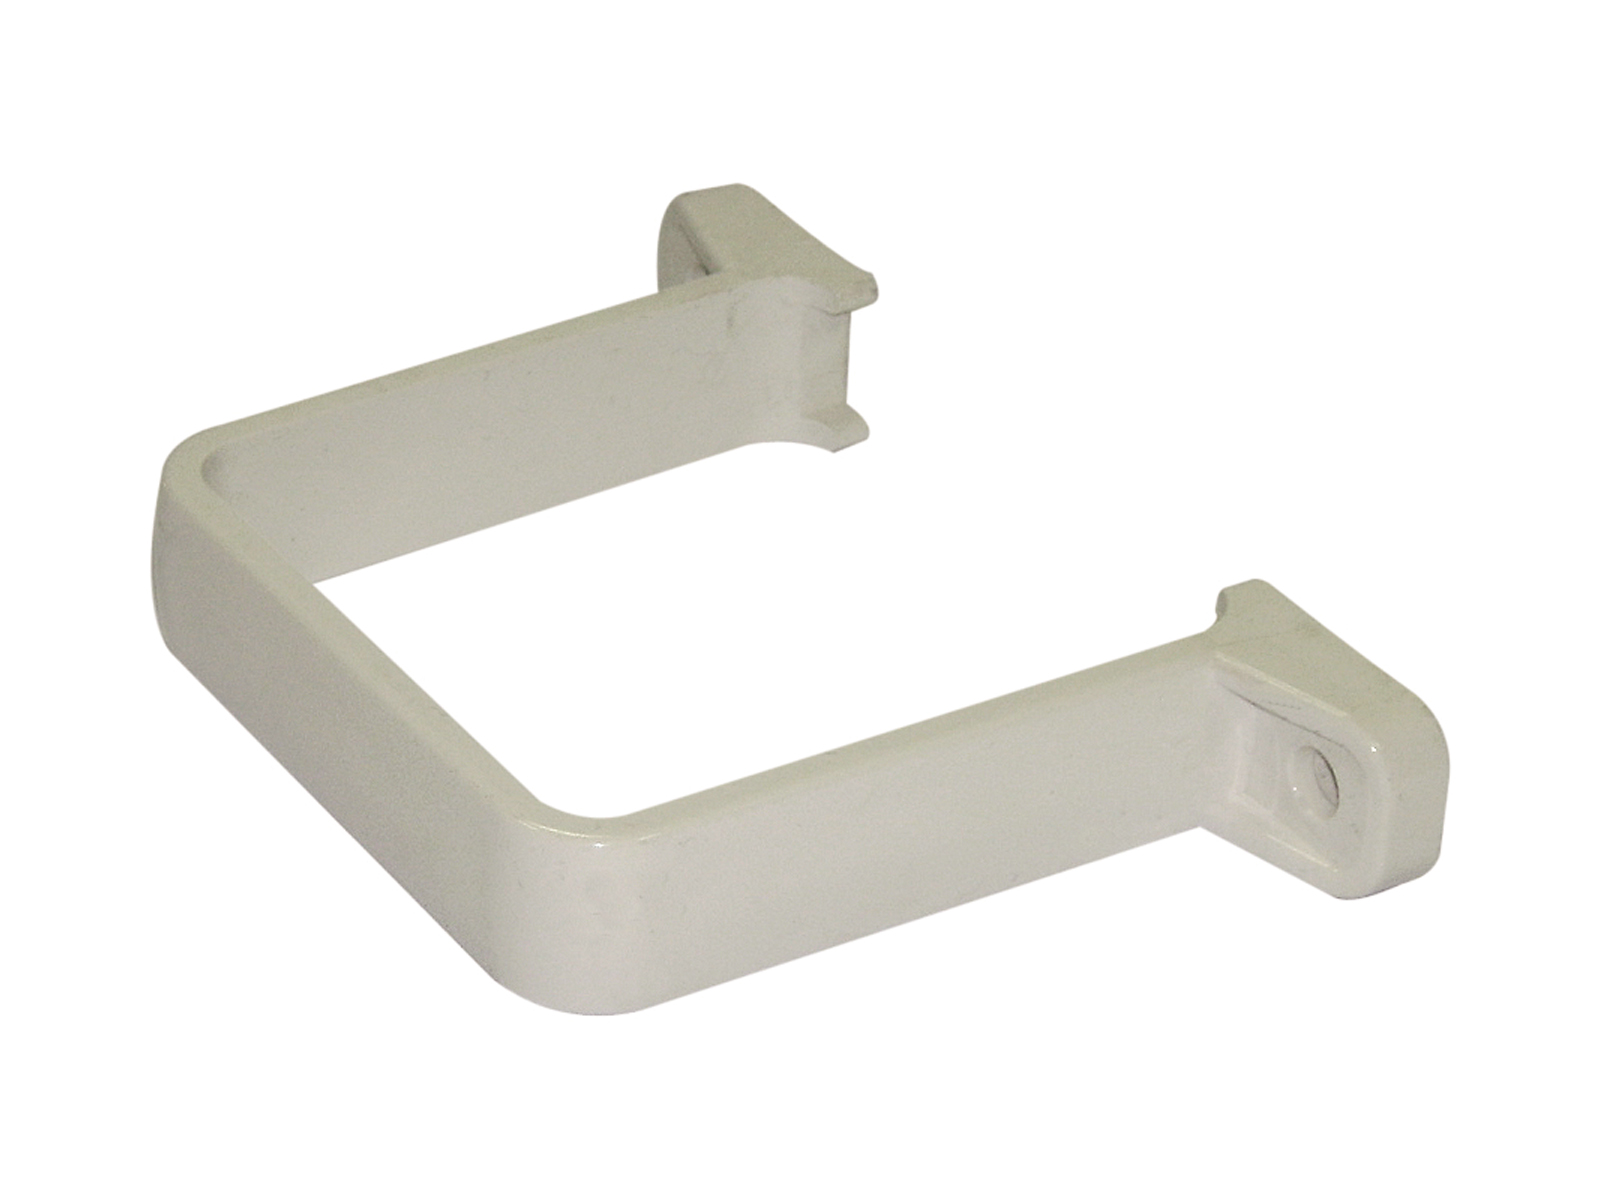 FLOPLAST RCS2WH 65MM SQUARE DOWNPIPE - FLUSH PIPE CLIP - WHITE